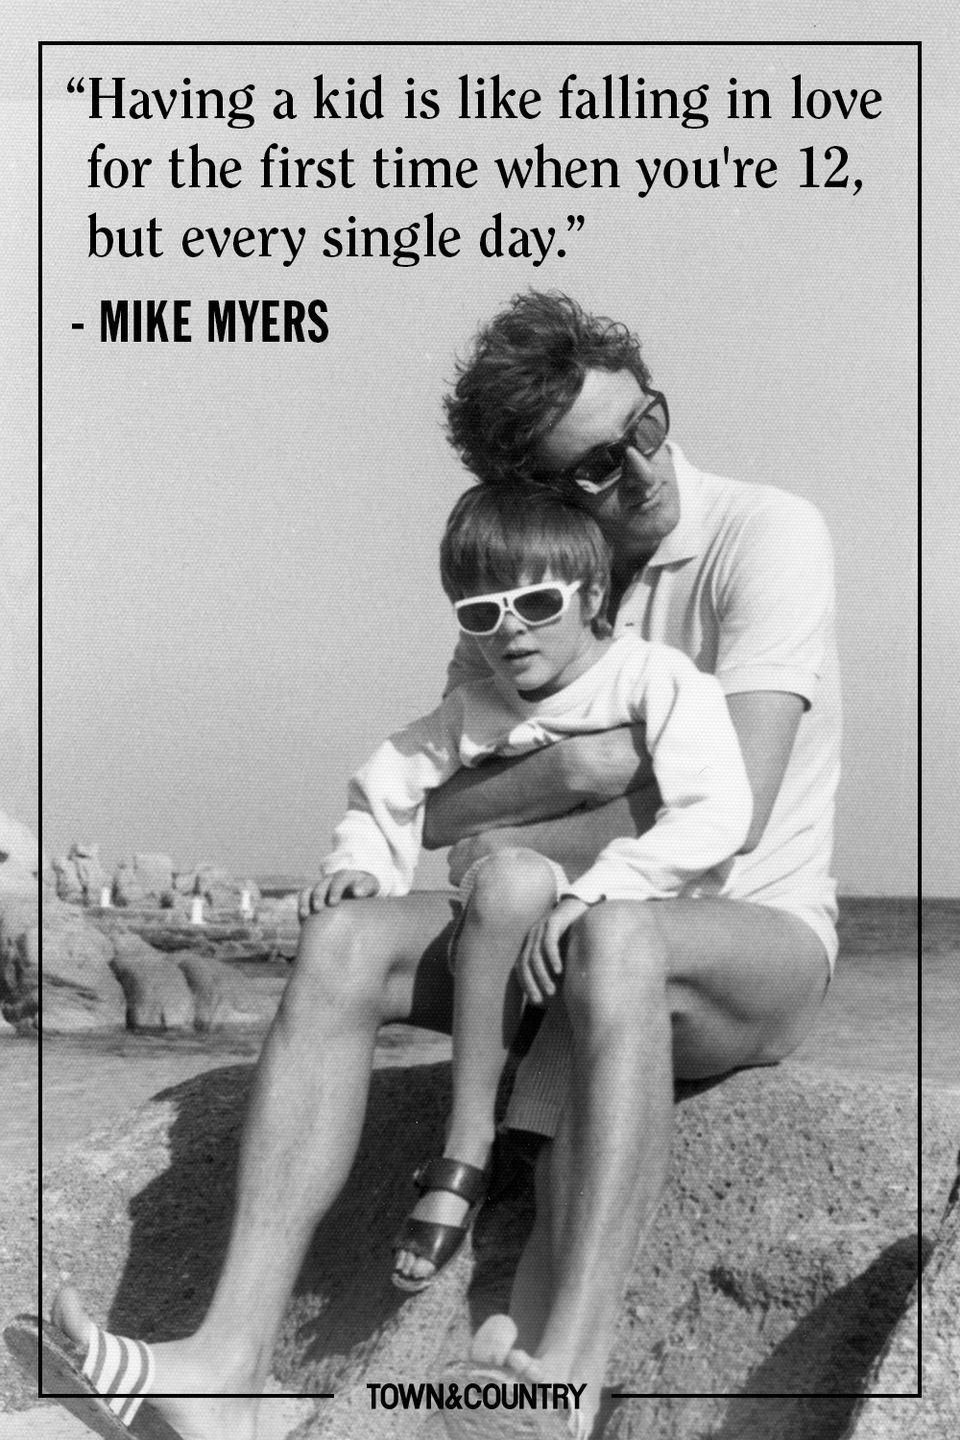 "<p>""Having a kid is like falling in love for the first time when you're 12, but every single day.""</p><p>- Mike Myers</p>"